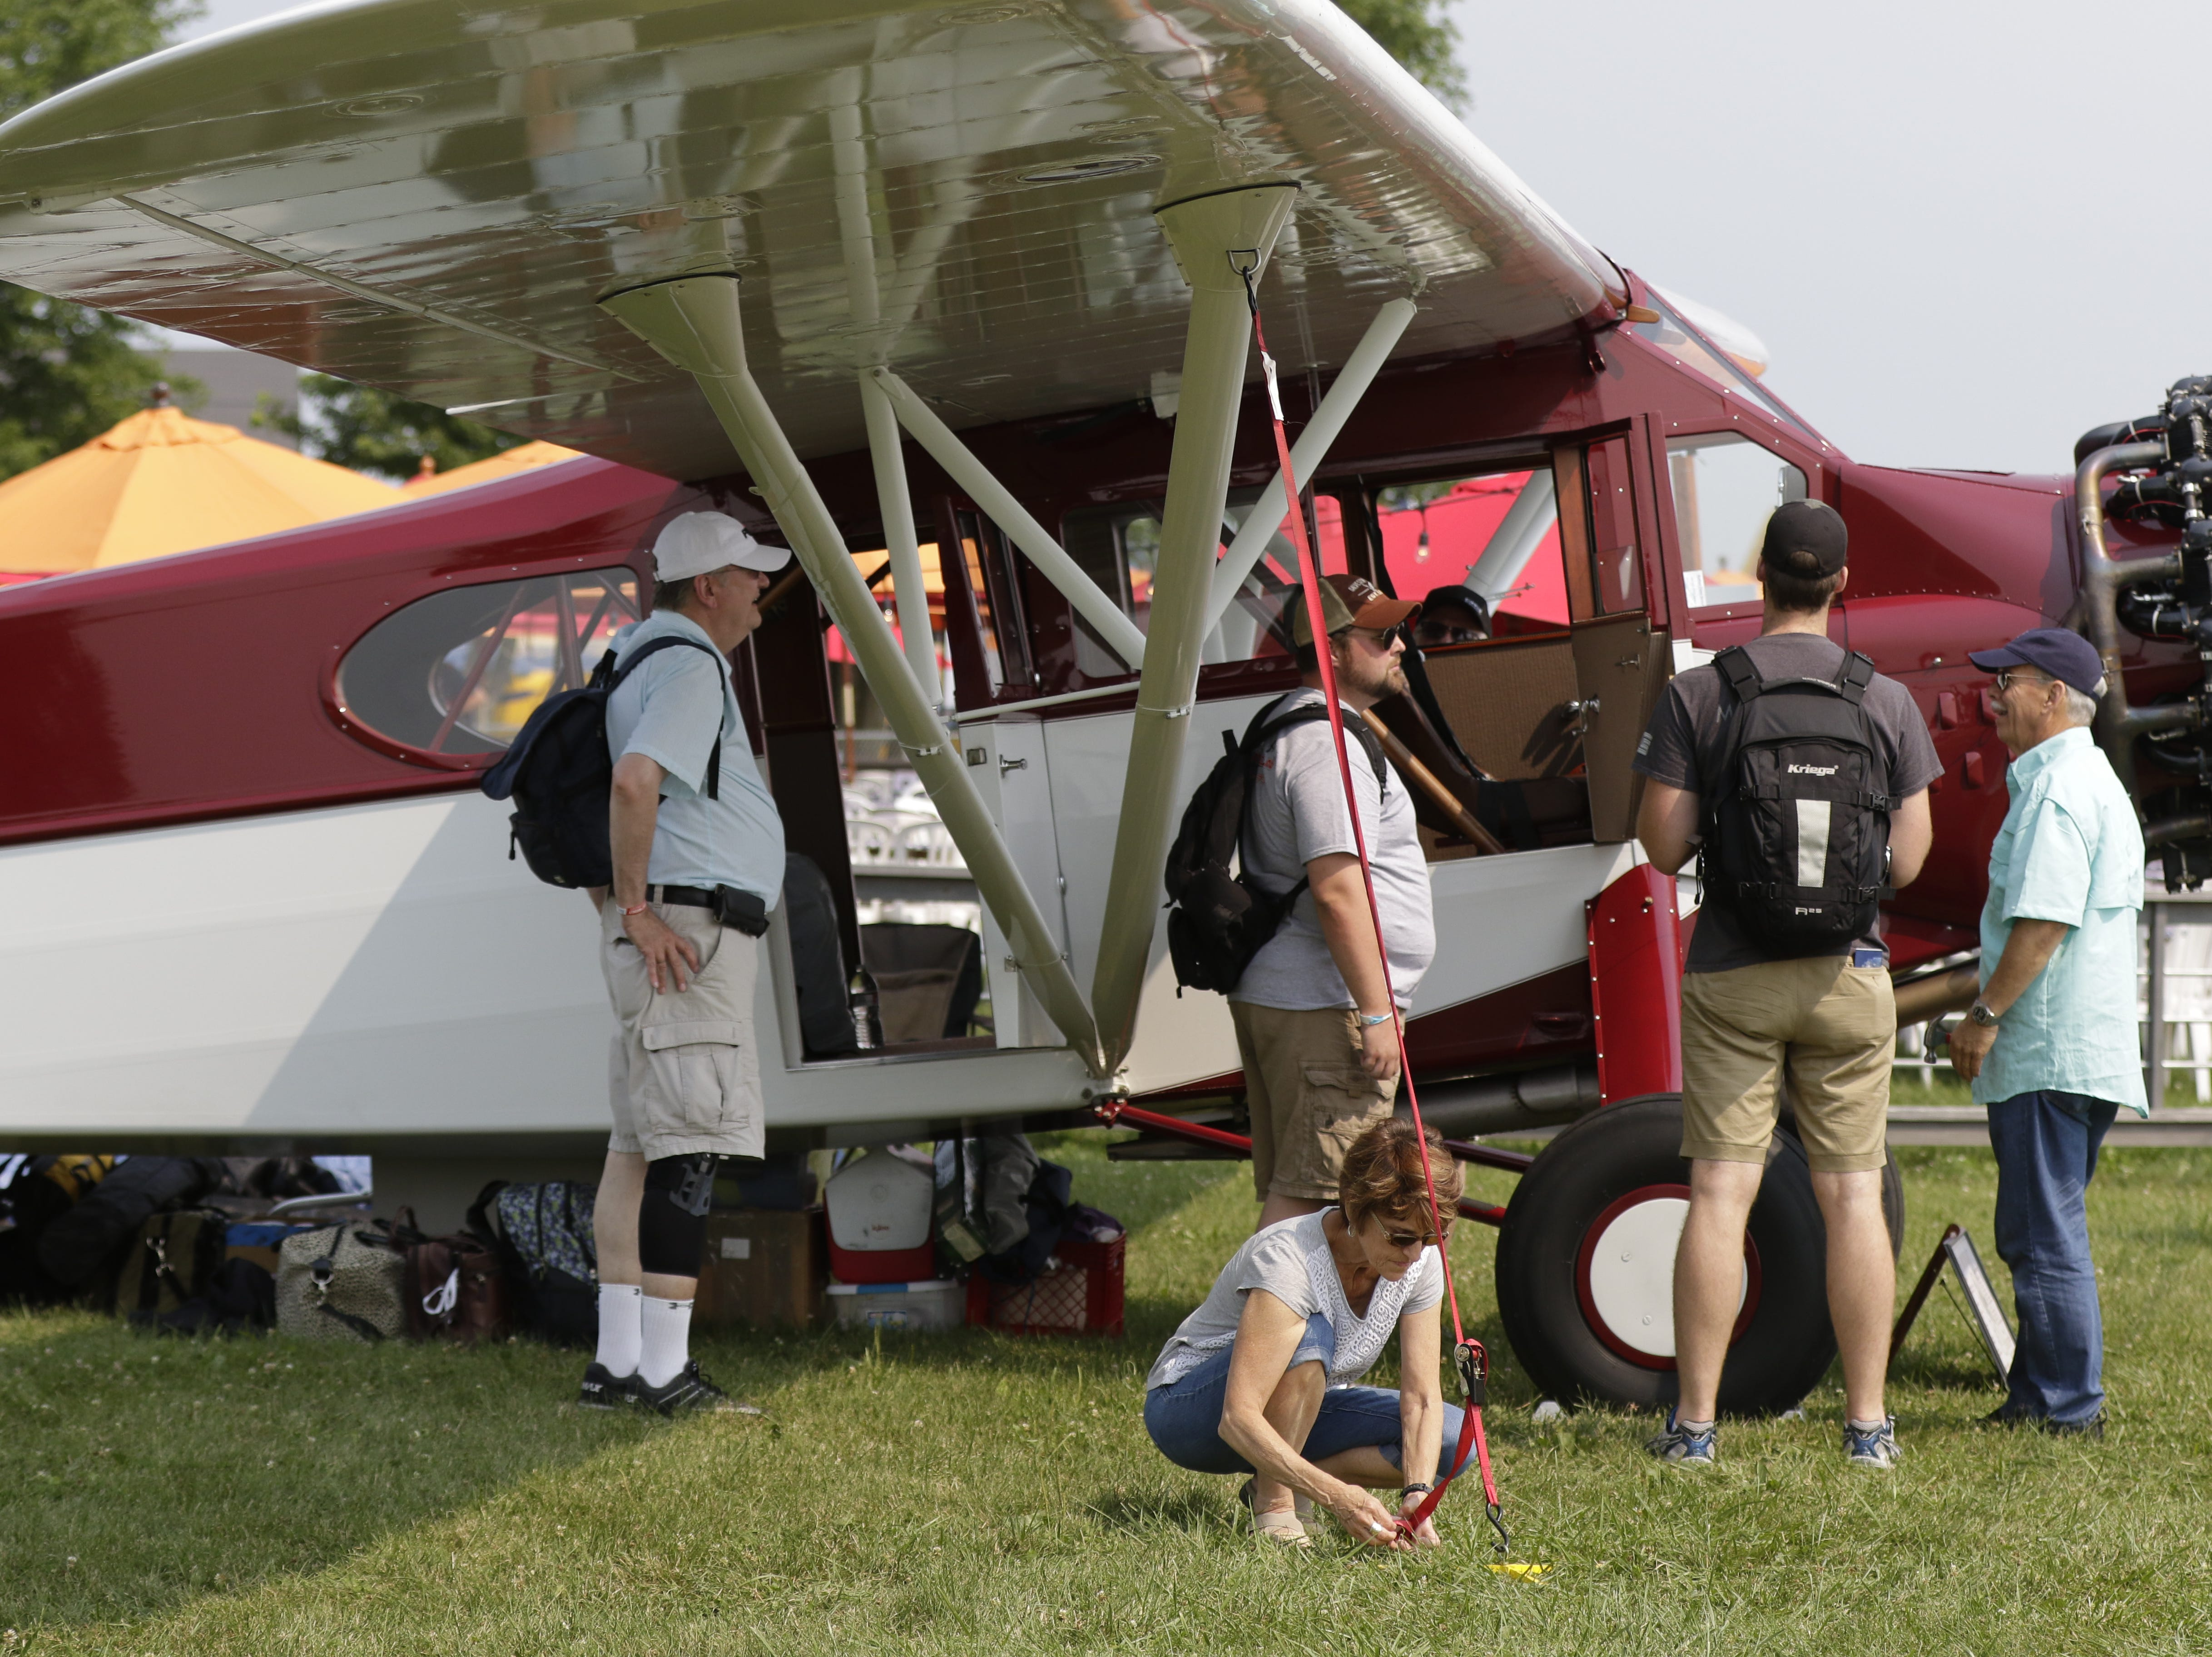 Jeanie Horst of Smoketown, PA, ties down a Fairchild 71 in the Vintage area of AirVenture.  The first day of AirVenture 2018 opened on July 21, 2018.  Thousands of people will pass through the gates of AirVenture.